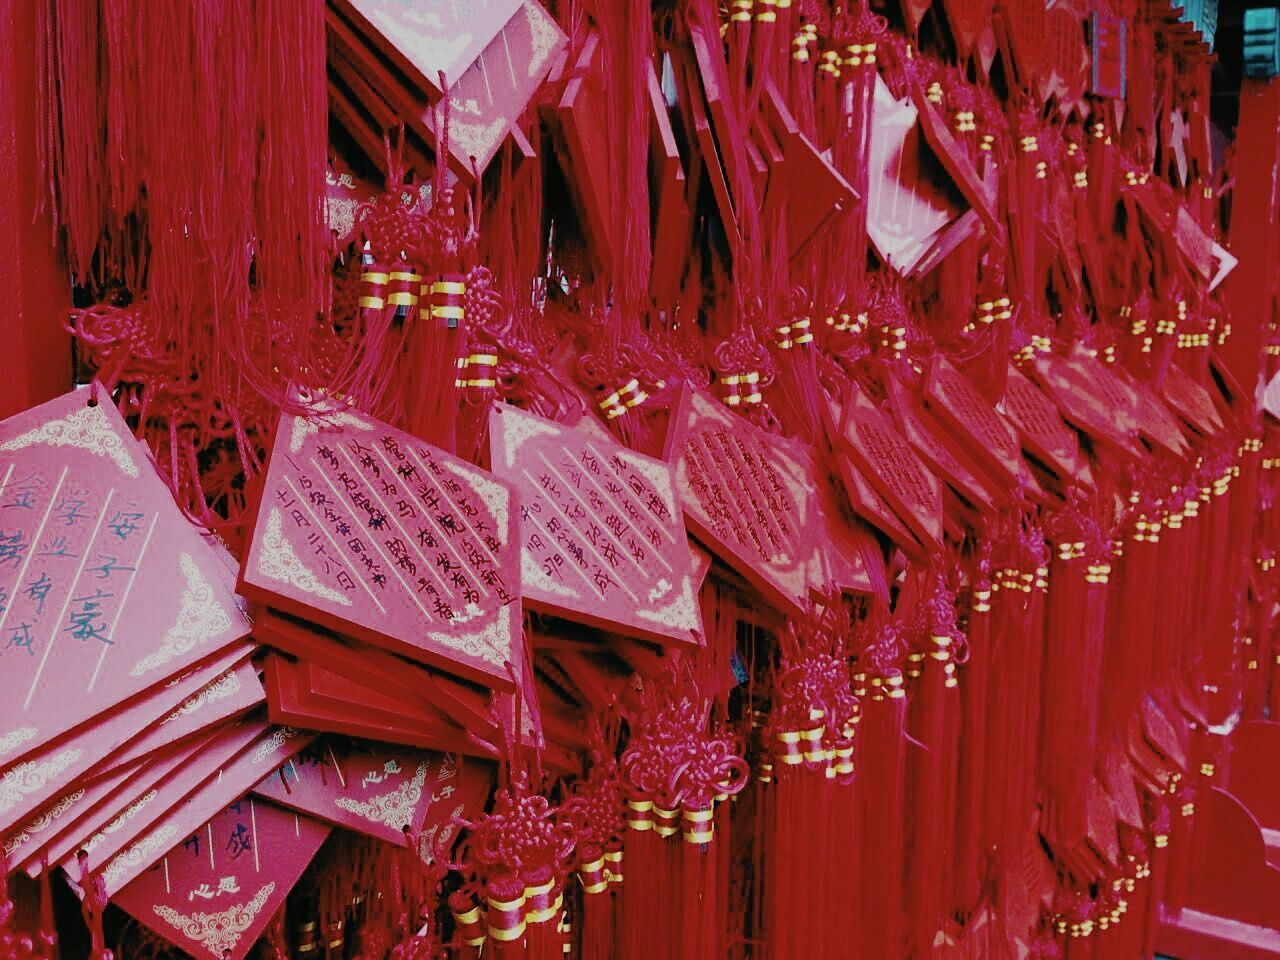 Wishes in the temple of Confucius Red No People Choice Hanging China Chinese China Culture China. China In My Eyes China Art China Dekor Confucian Temple Confucius Temple Confucian School Confucious Indoors  Day First Eyeem Photo